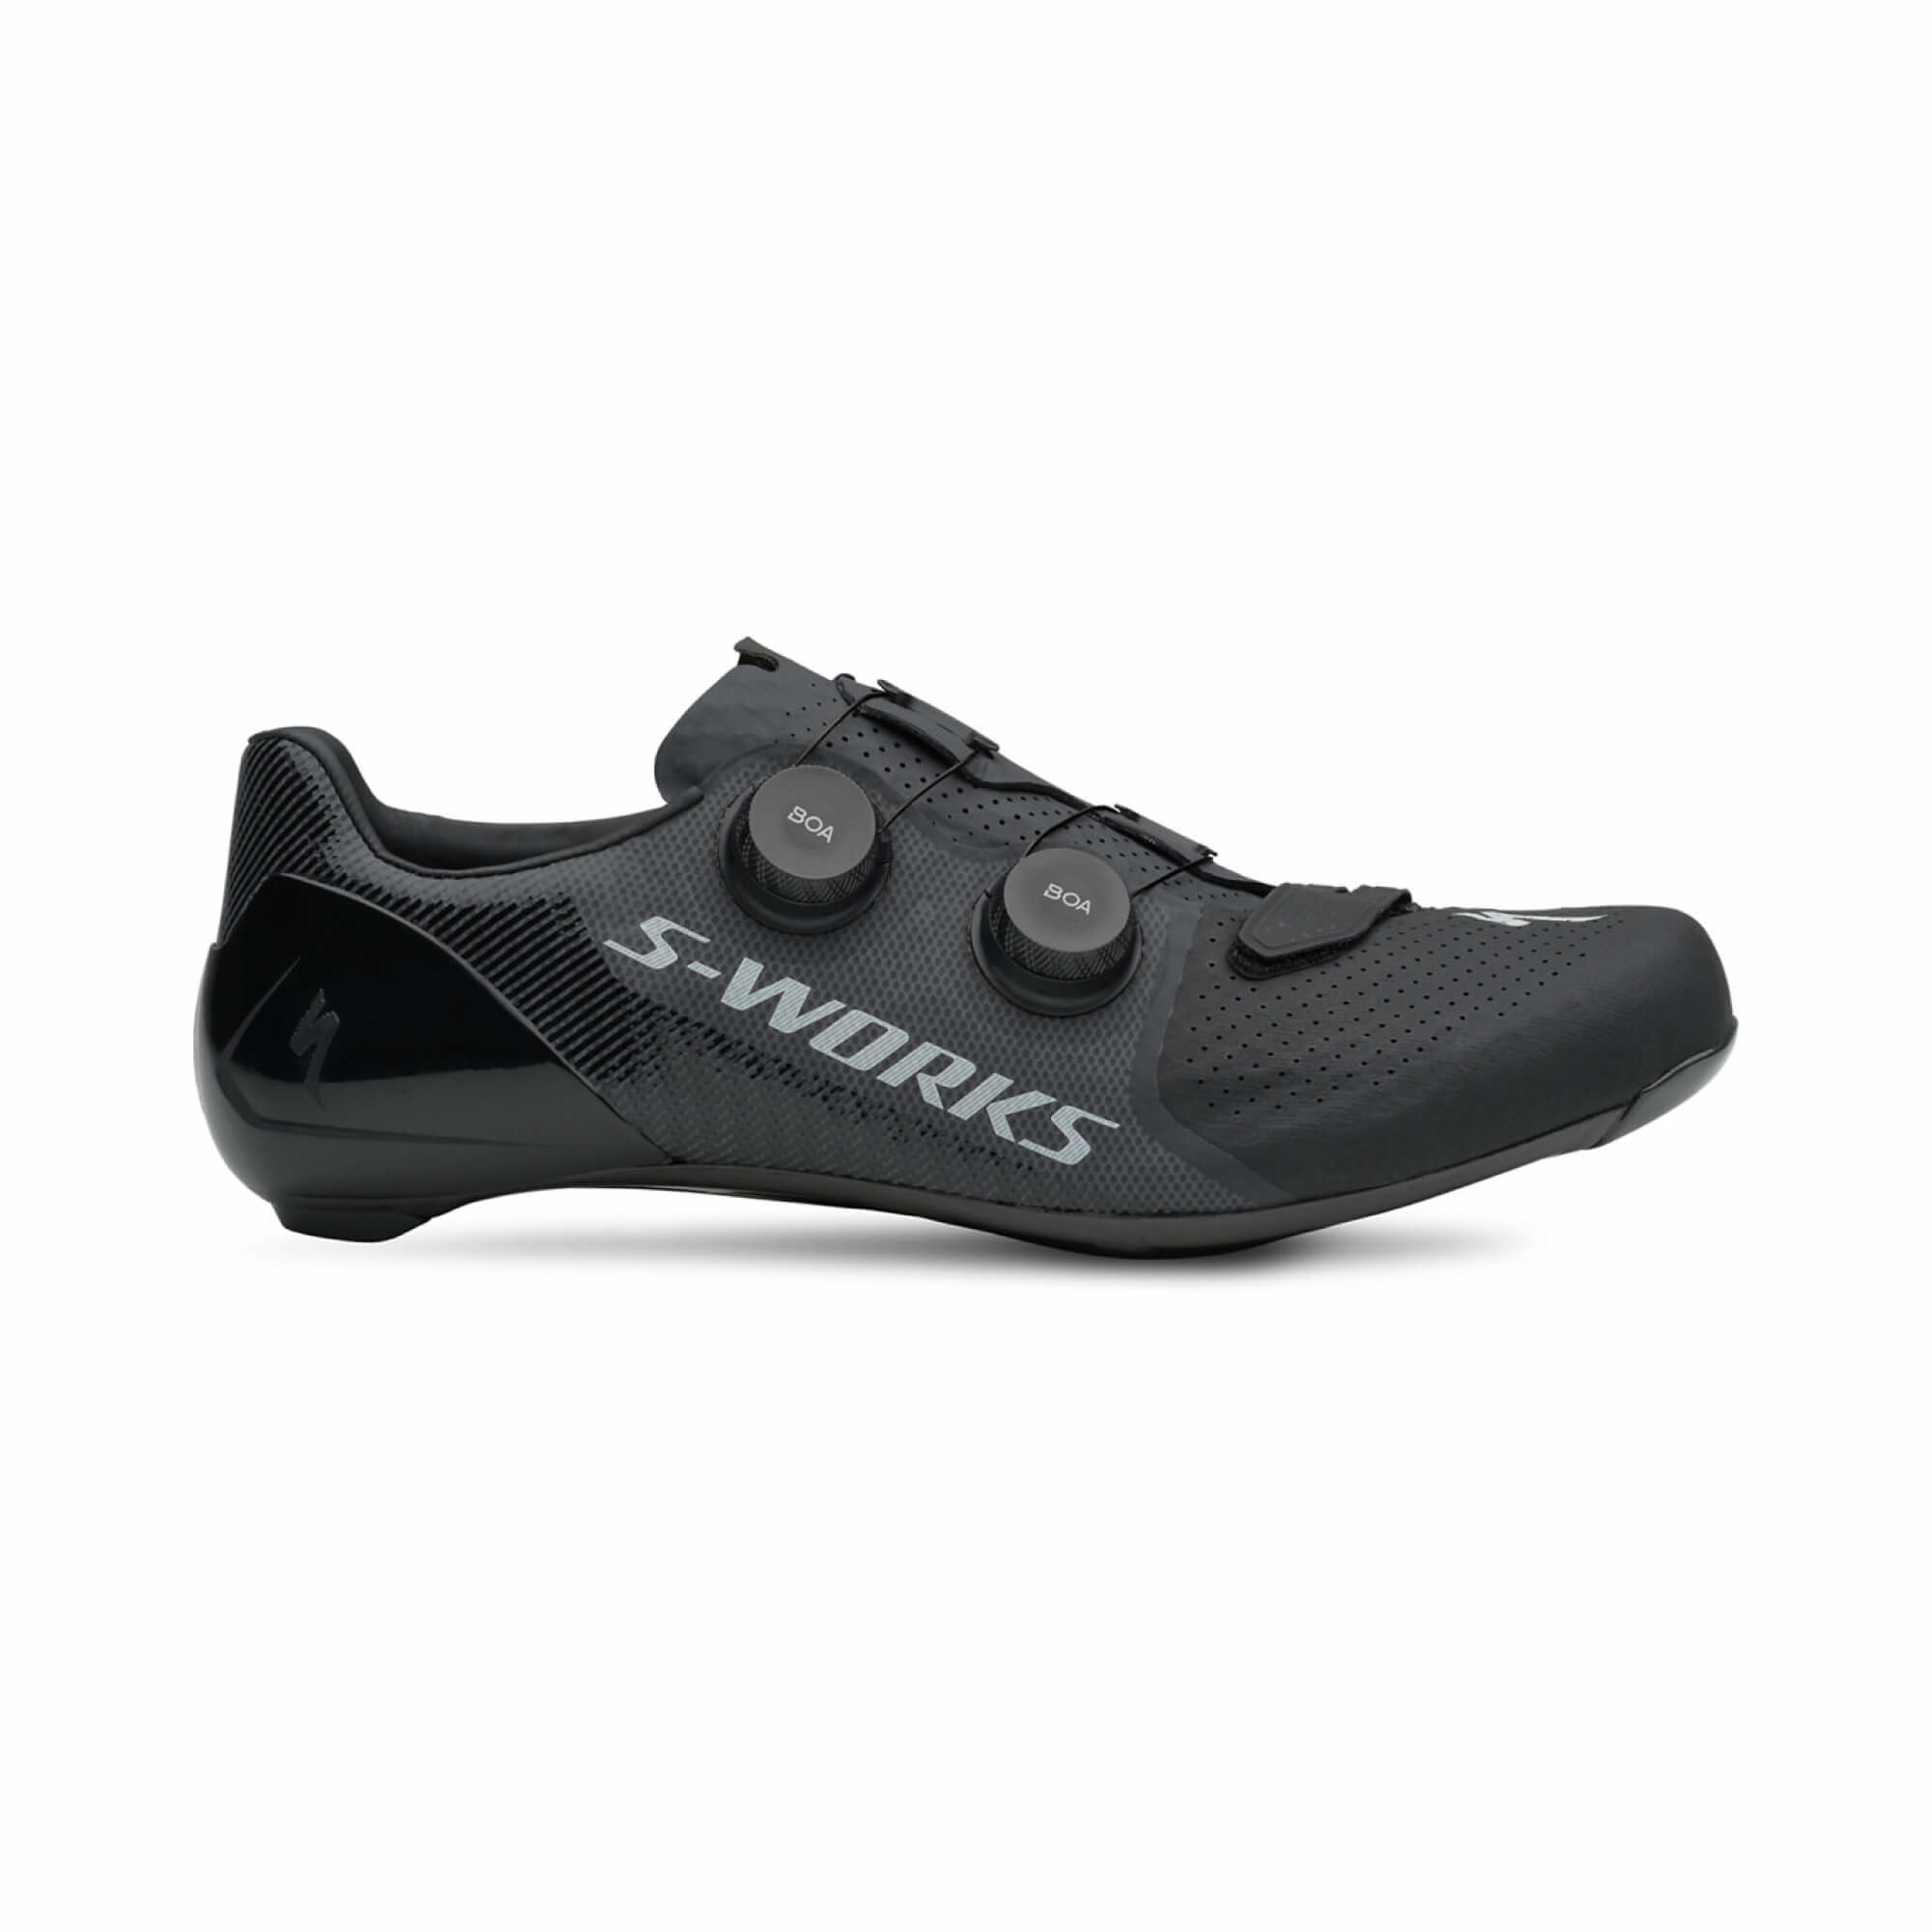 S-Works 7 Road Shoe-12